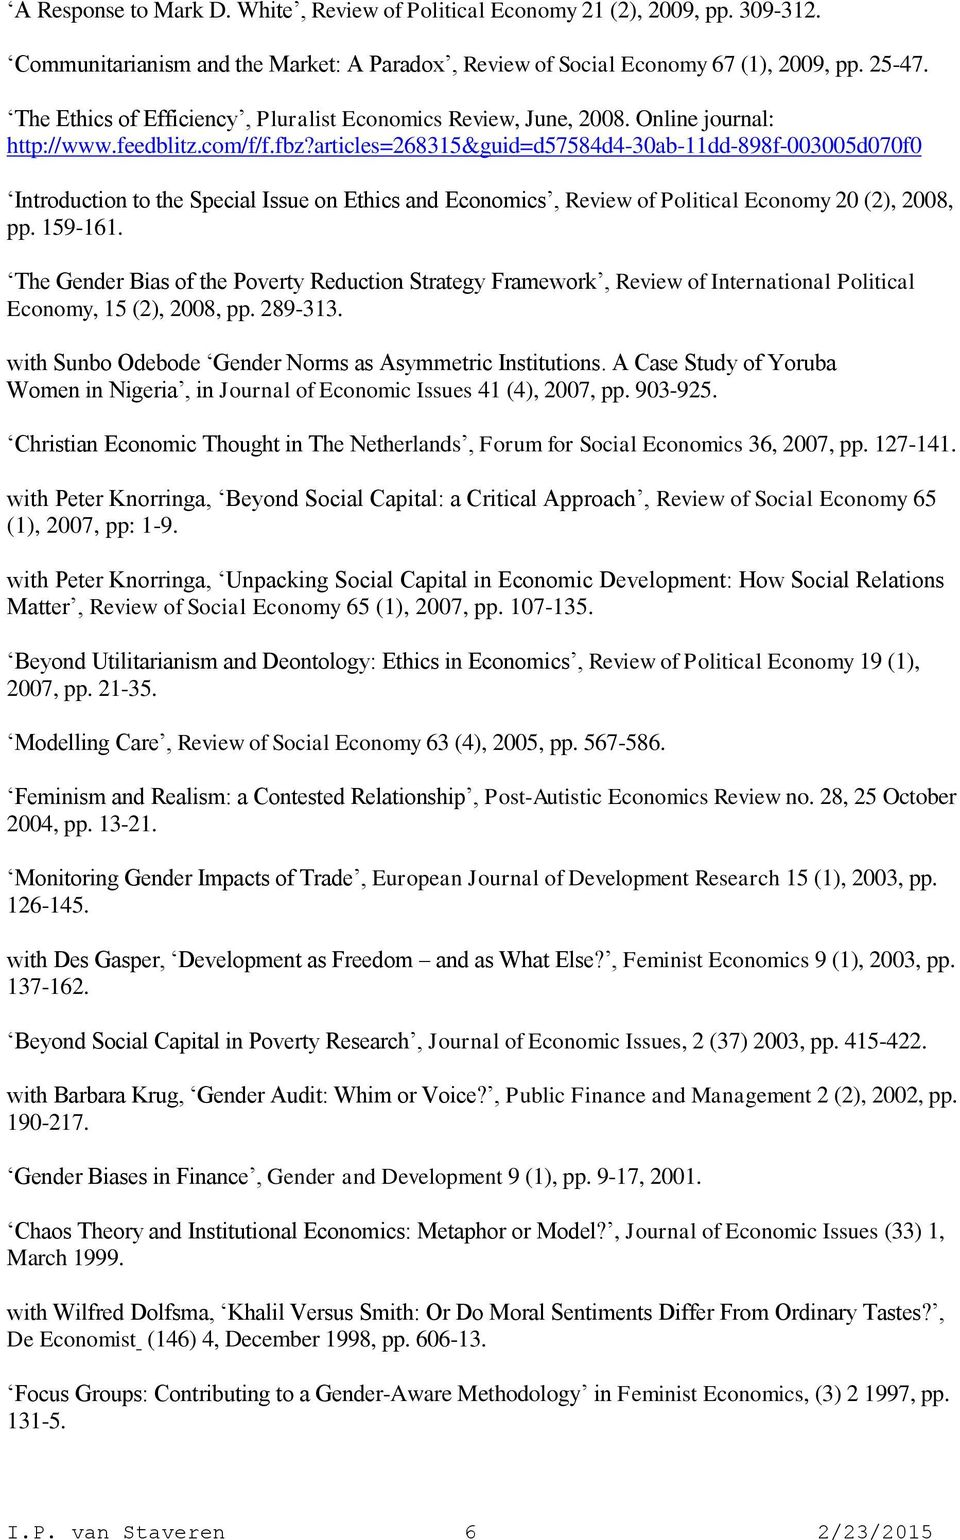 articles=268315&guid=d57584d4-30ab-11dd-898f-003005d070f0 Introduction to the Special Issue on Ethics and Economics, Review of Political Economy 20 (2), 2008, pp. 159-161.